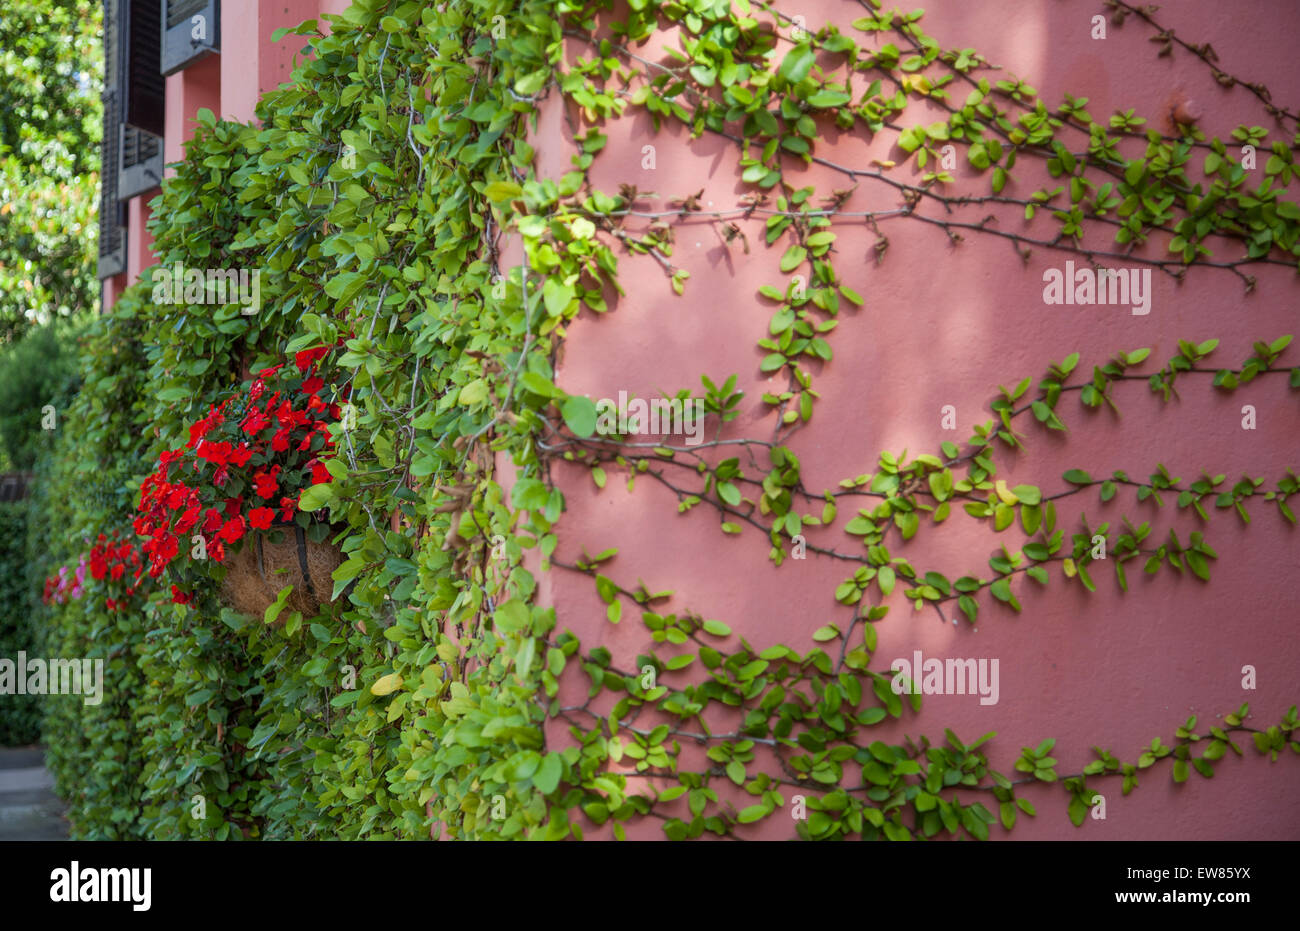 Beautiful flowers and vines along house wall in Charleston, South Carolina USA - Stock Image